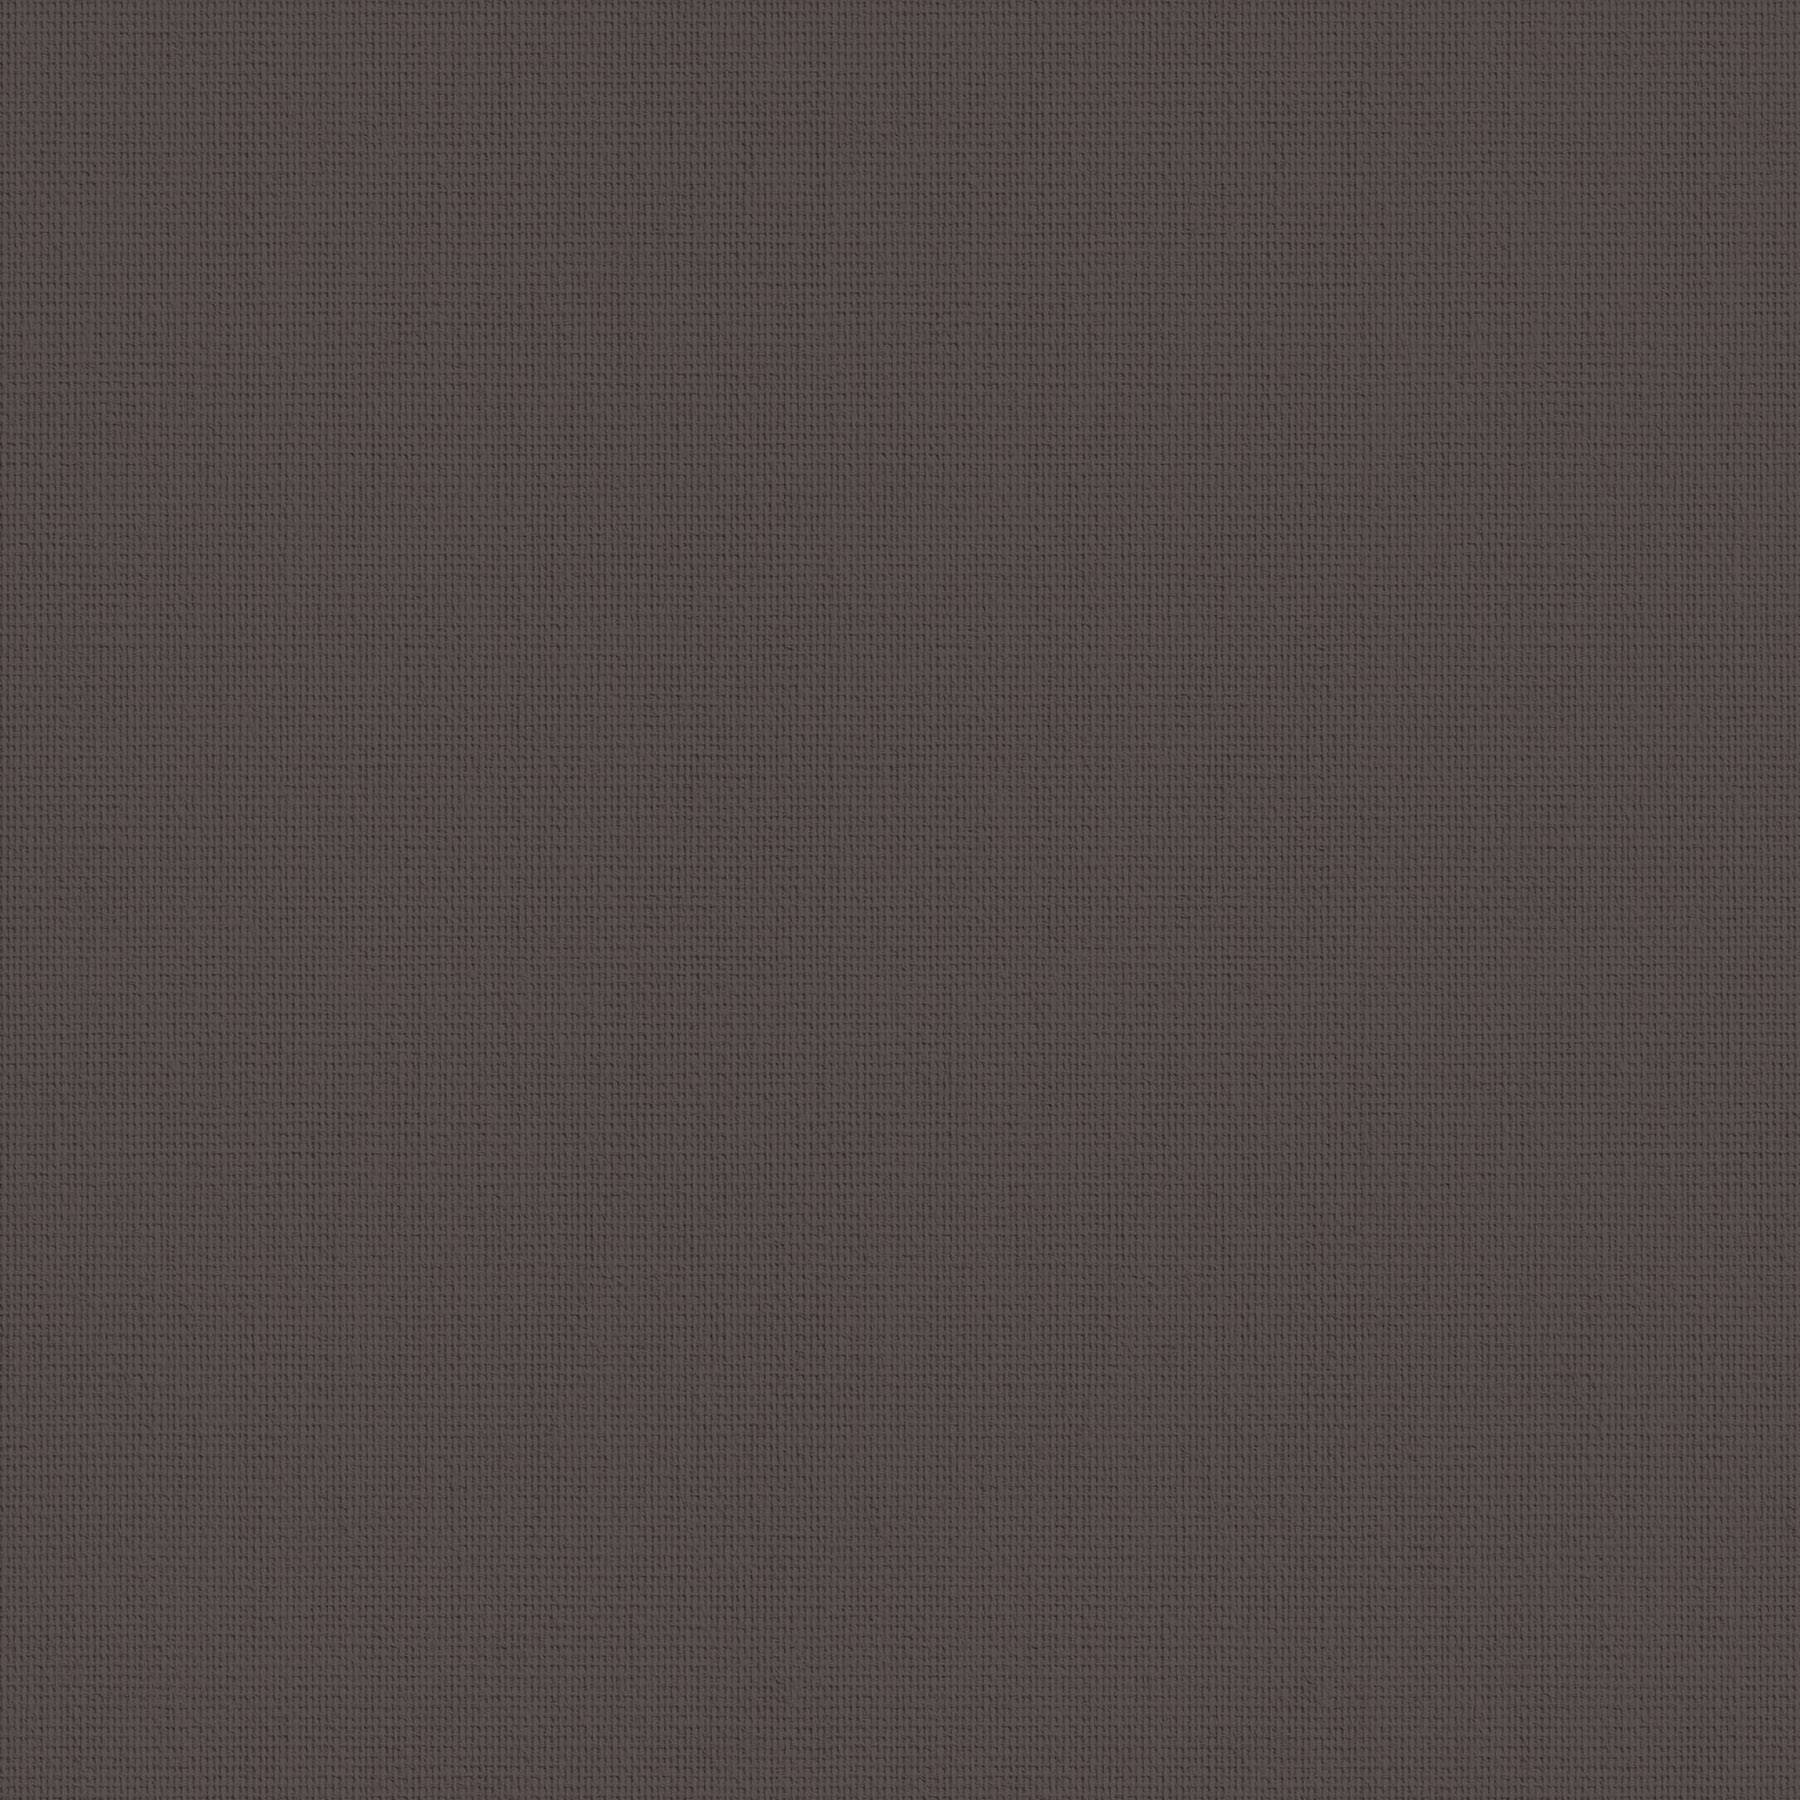 Bella Mörkläggande Chocolate Brown swatch